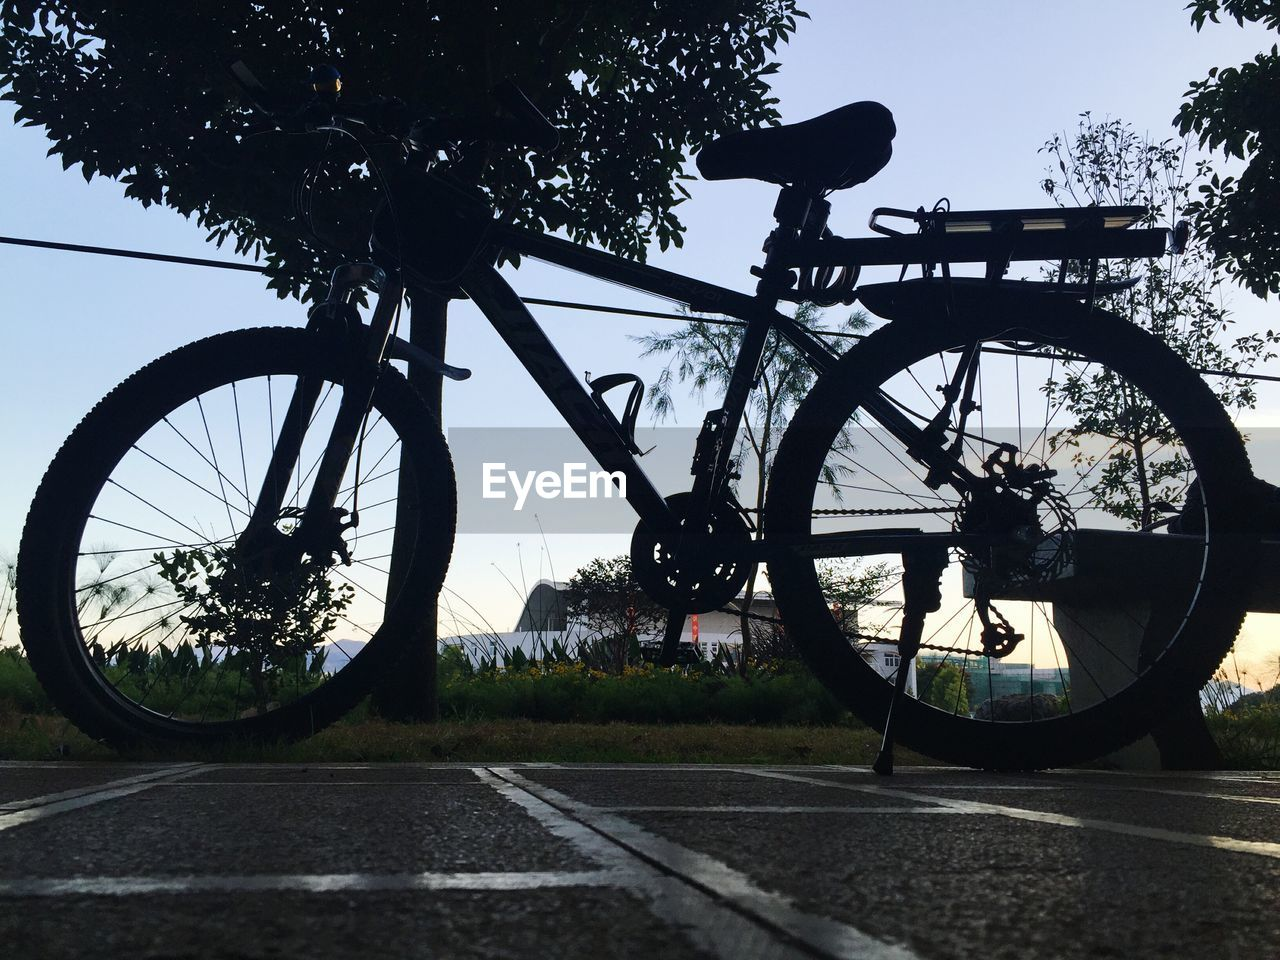 tree, bicycle, transportation, plant, sky, nature, land vehicle, mode of transportation, day, silhouette, road, outdoors, no people, clear sky, street, city, stationary, wheel, architecture, spoke